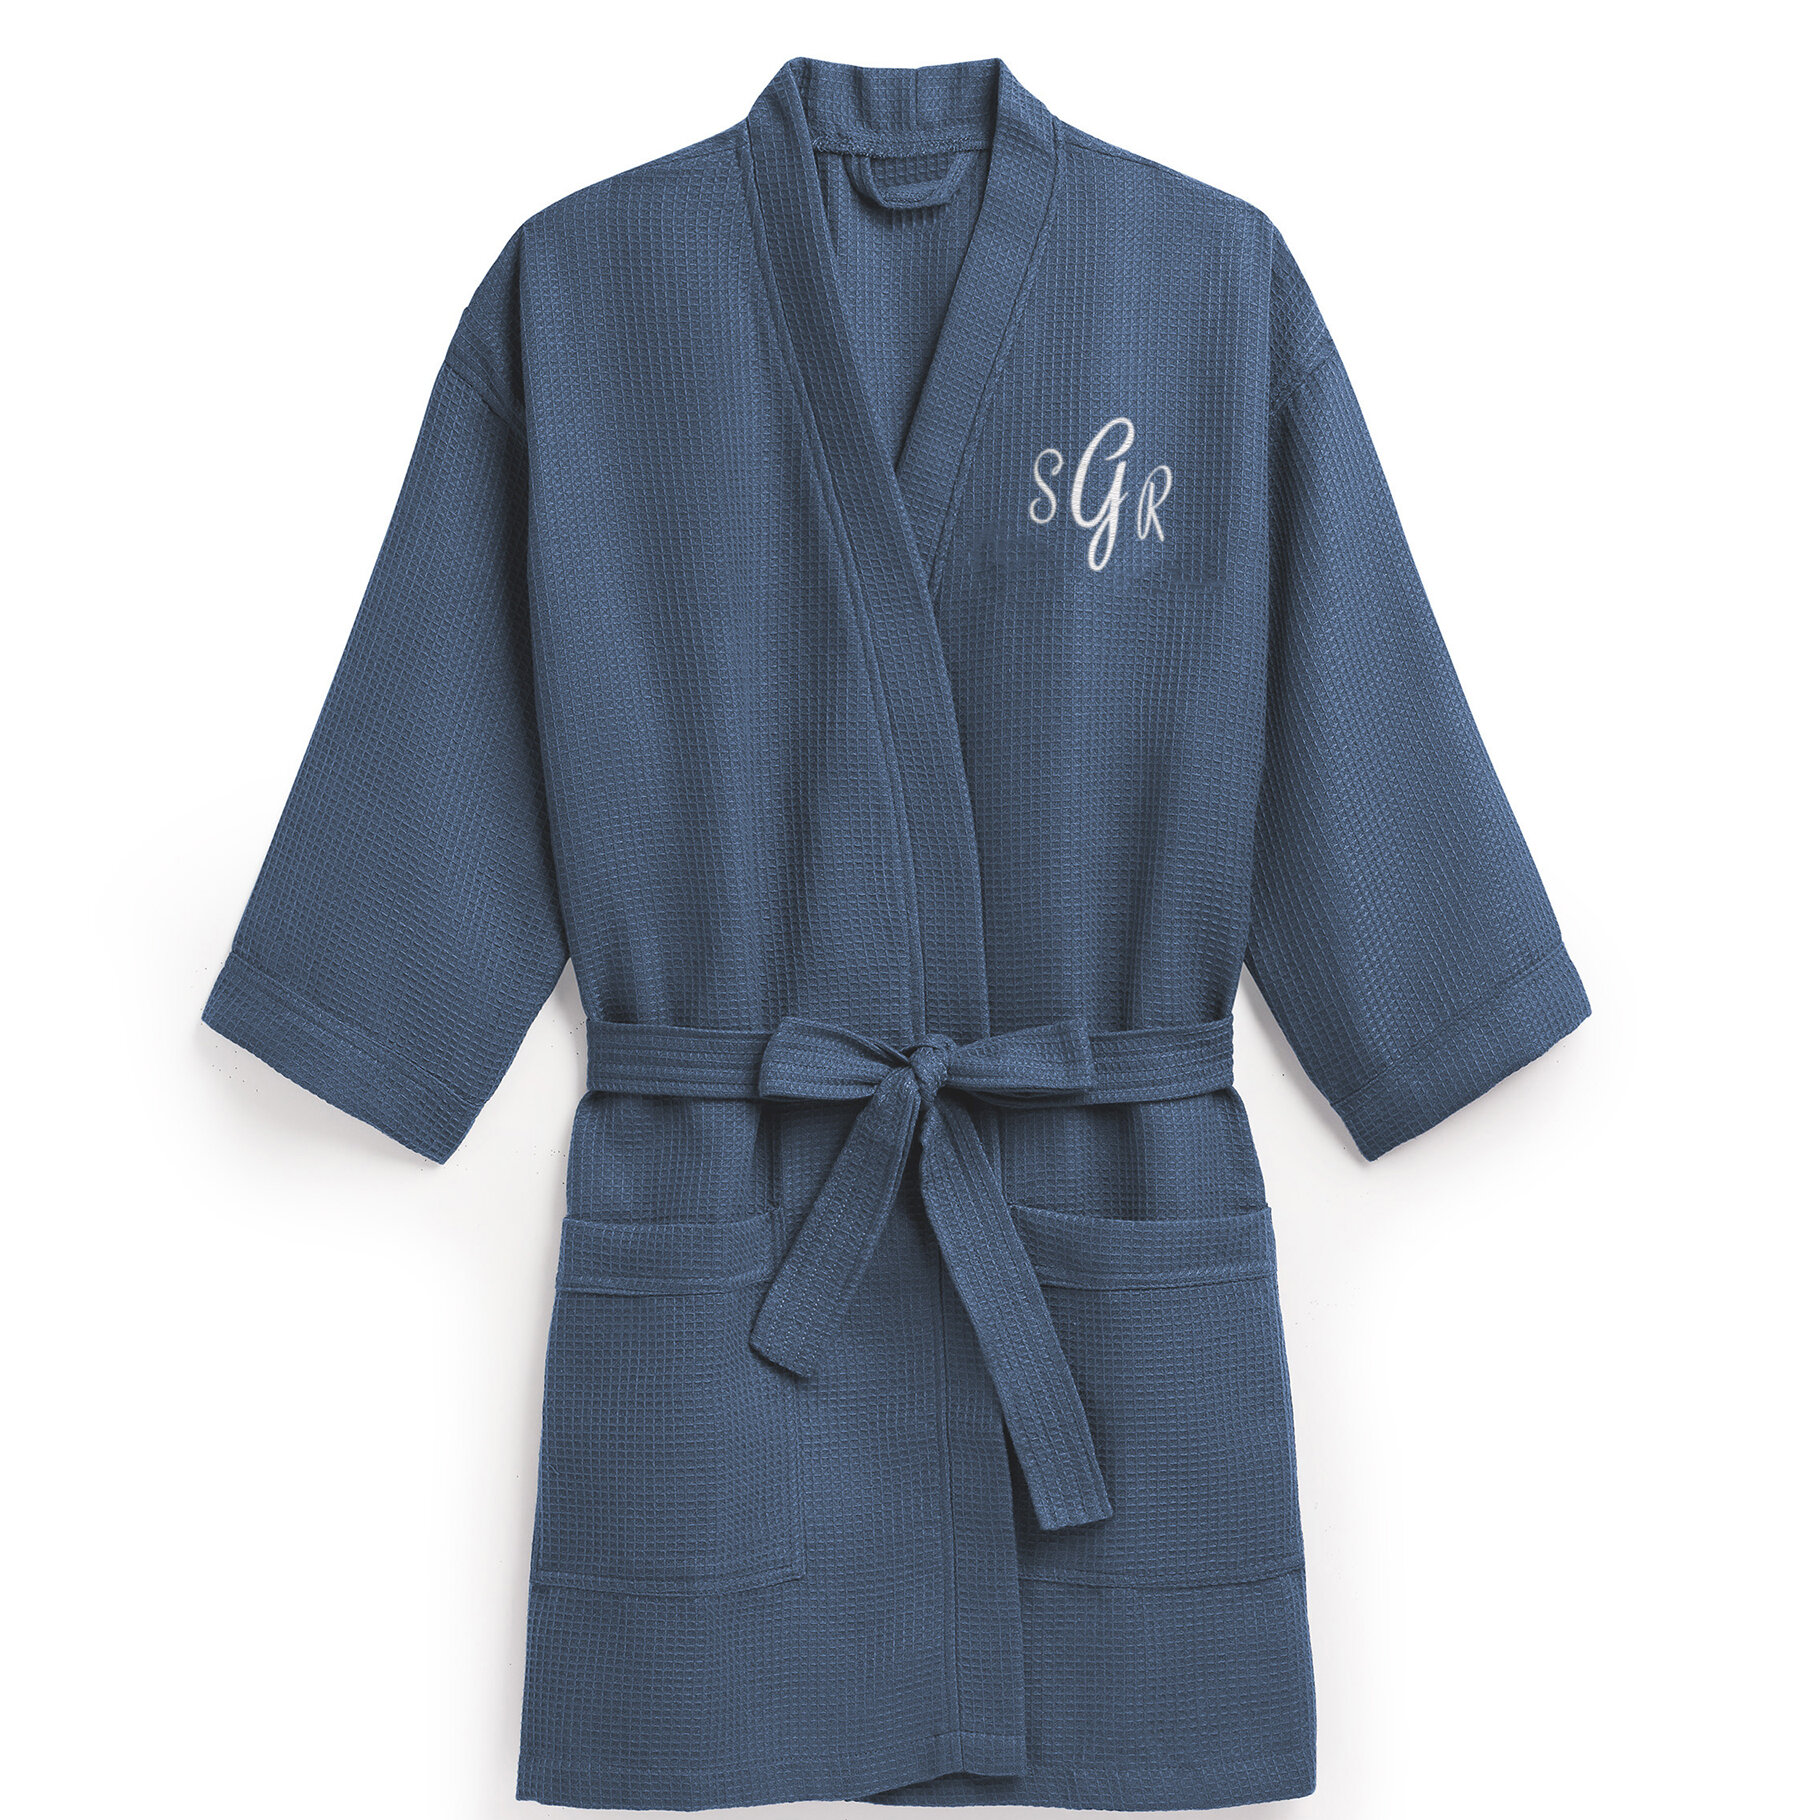 a6bc3d0205 Personalized Embroidered Waffle Spa Bathrobe